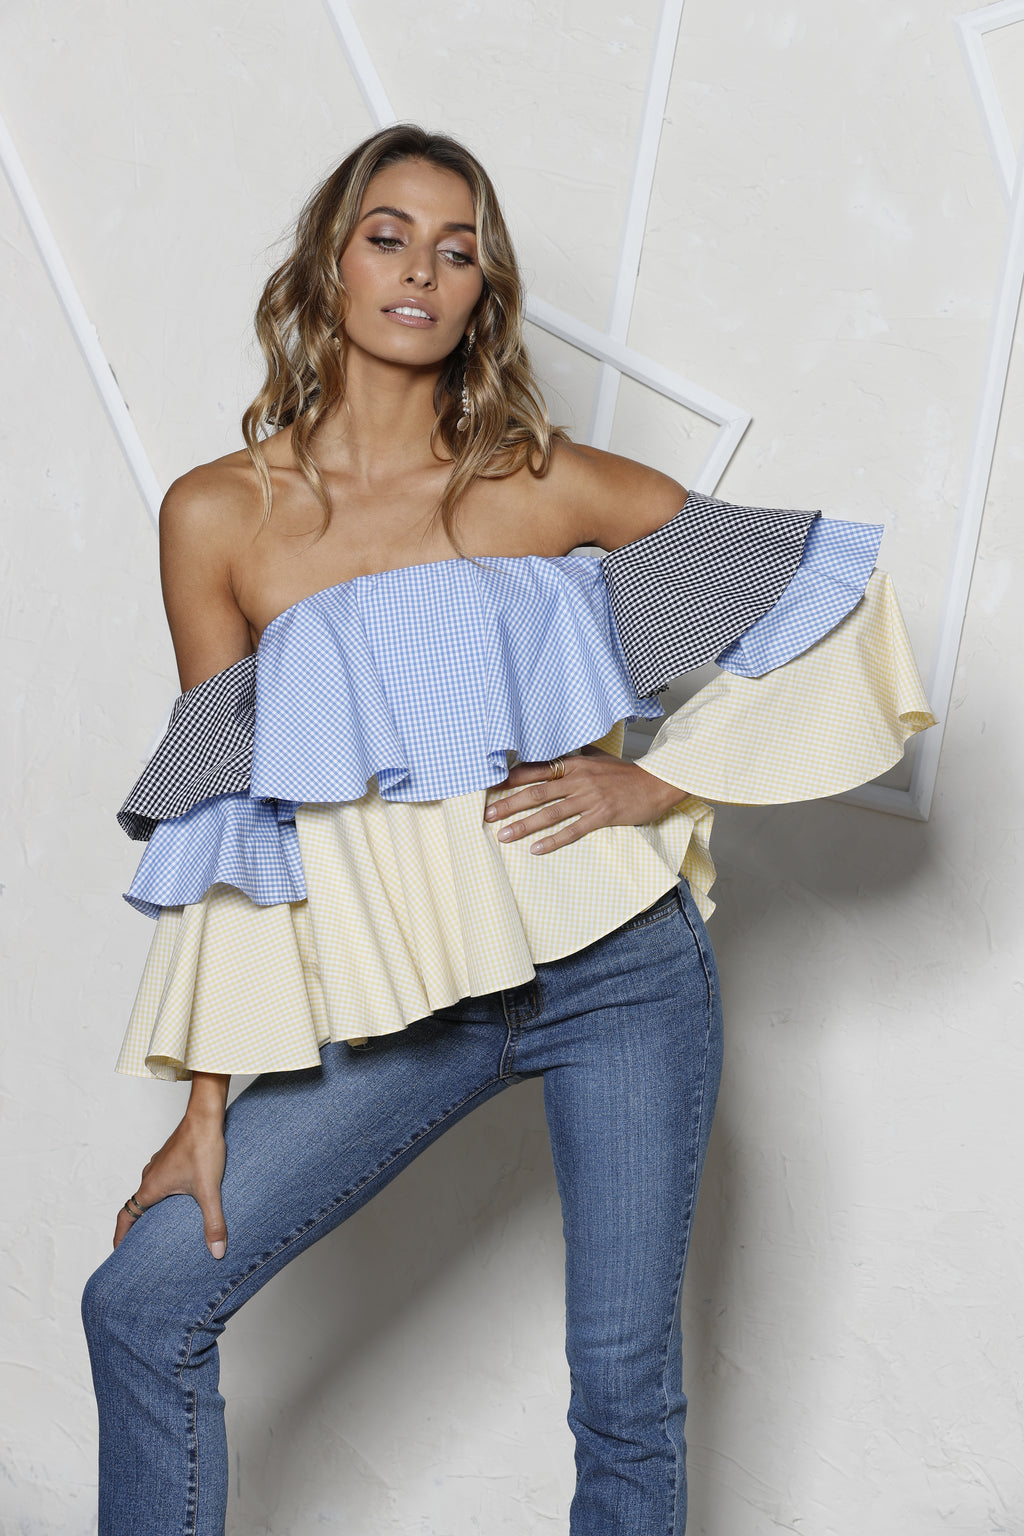 Women - Apparel - Shirts - Blouses:StyleKeepers:Virgo Off-Shoulder Top:WKND threads